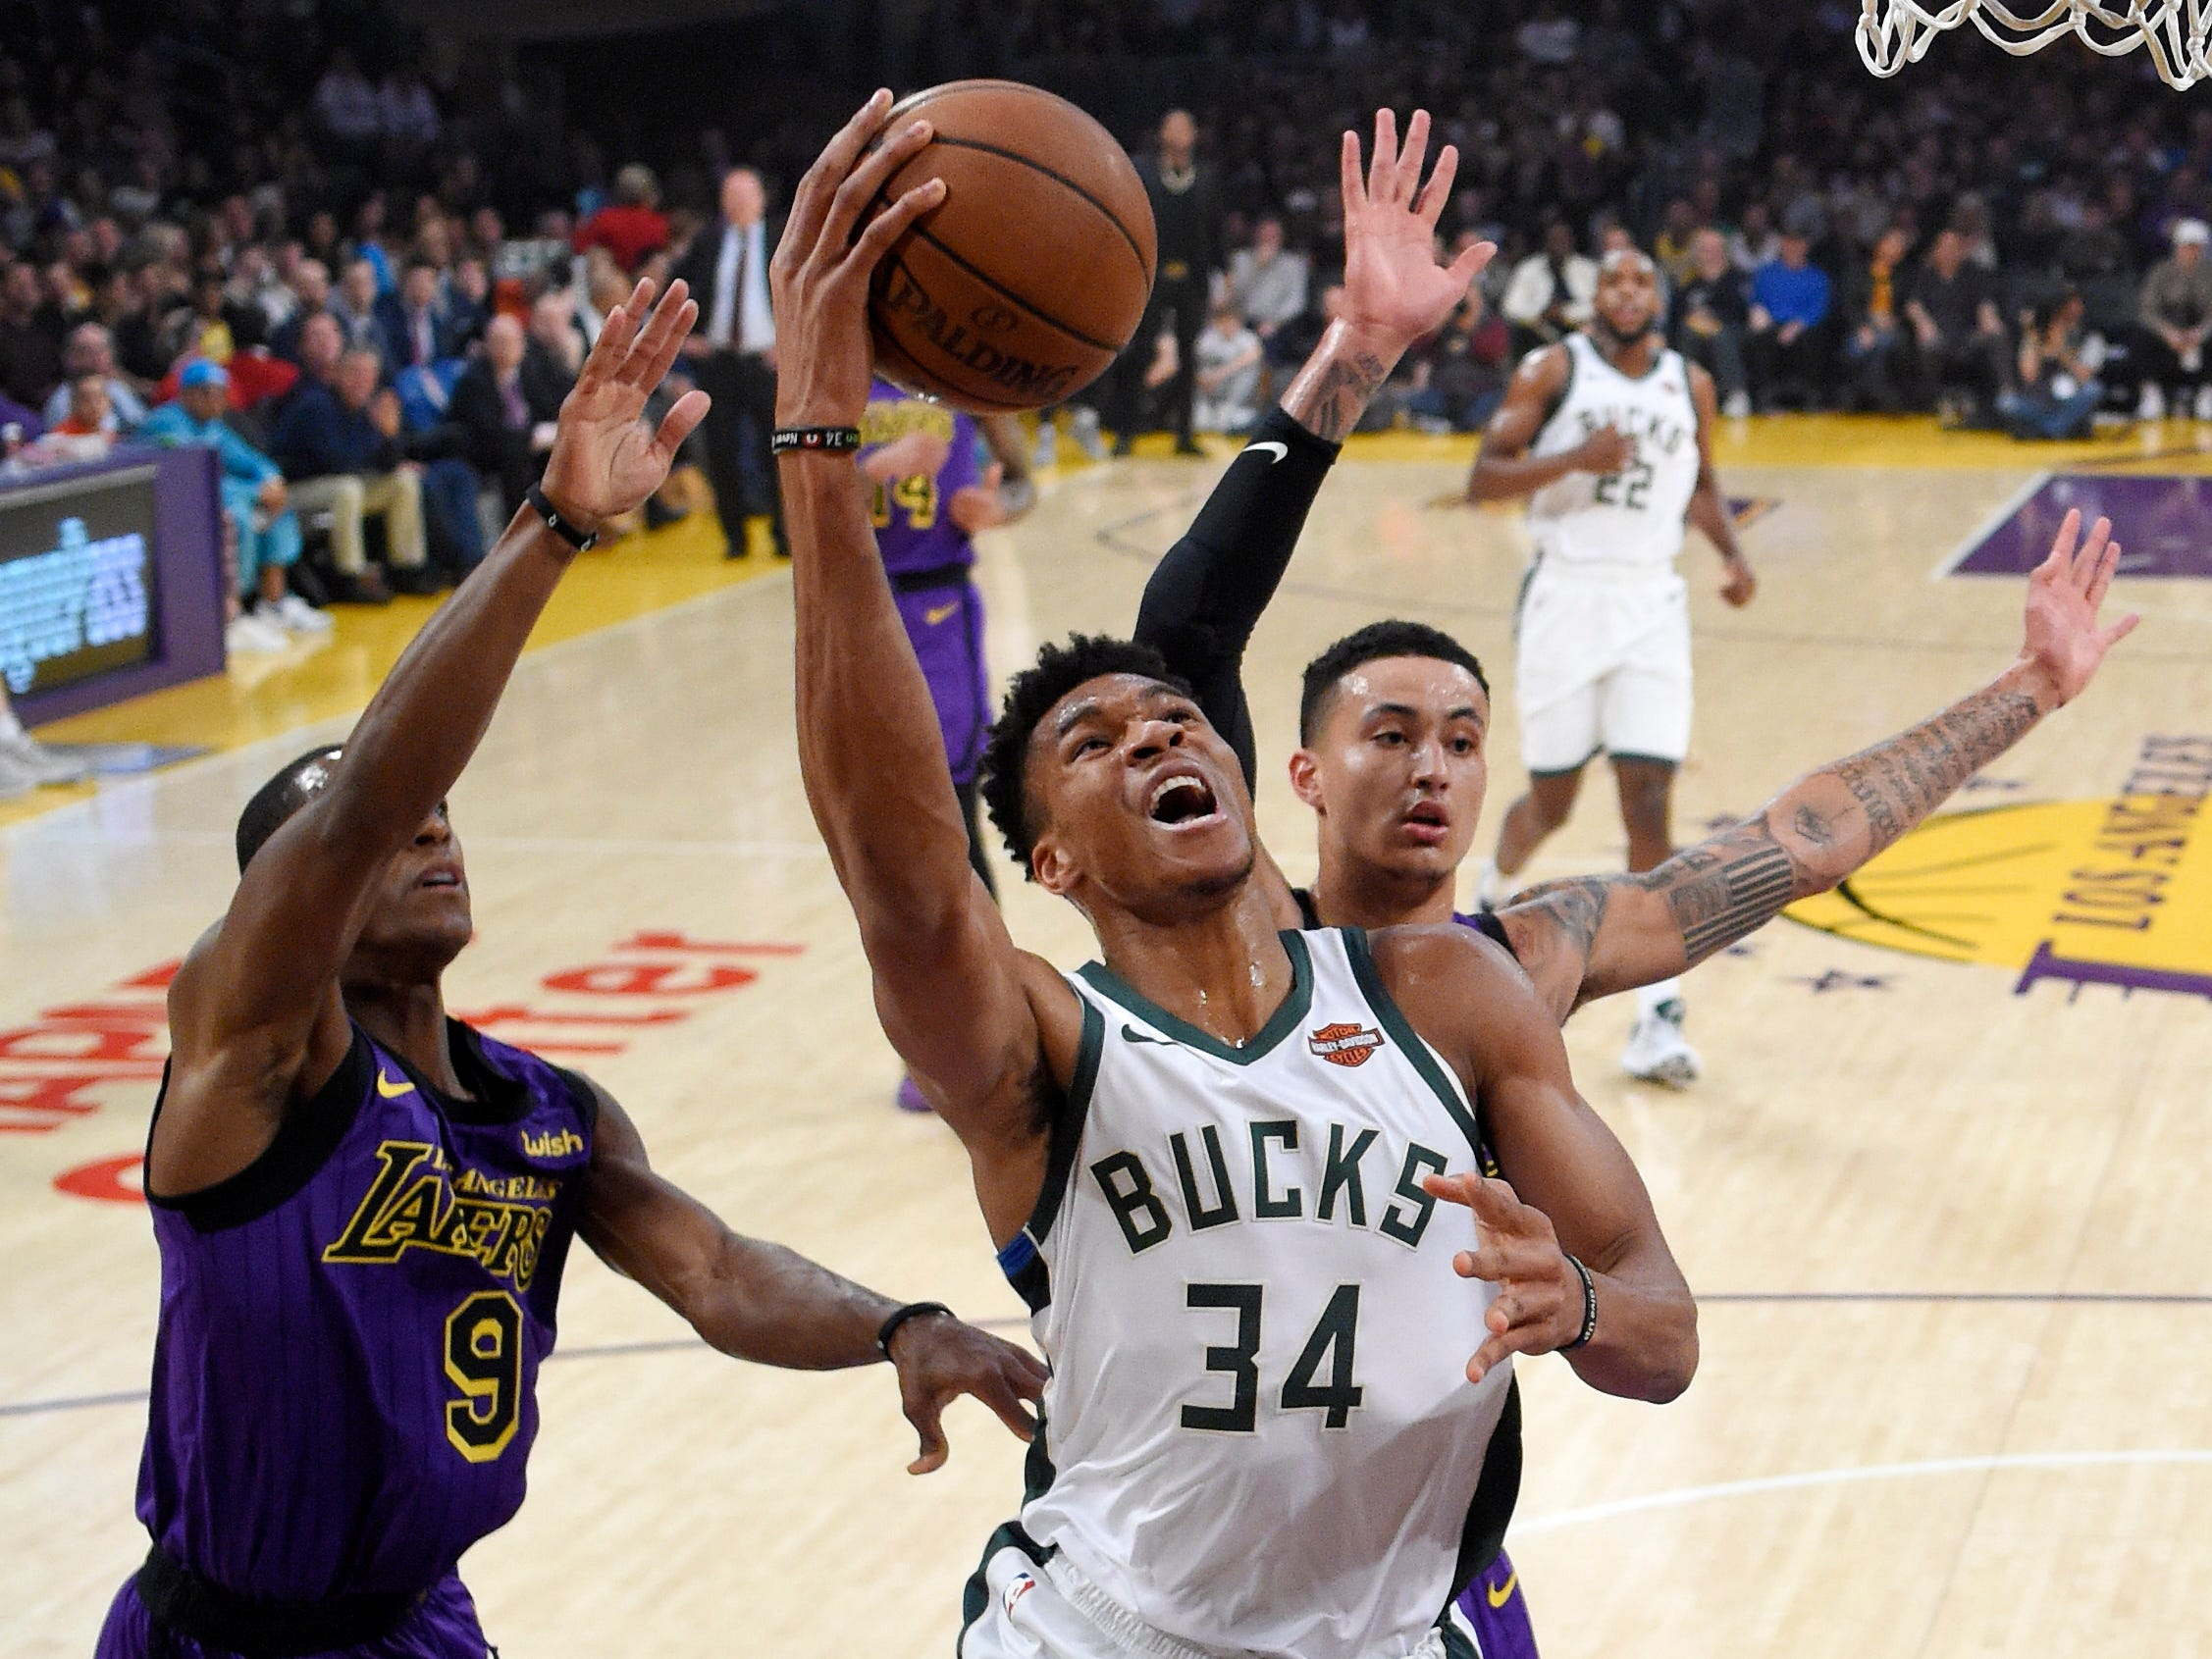 Bucks forward Giannis Antetokounmpo gets past Rajon Rondo (left) and Kyle Kuzma of the Lakers for a basket during the first half.